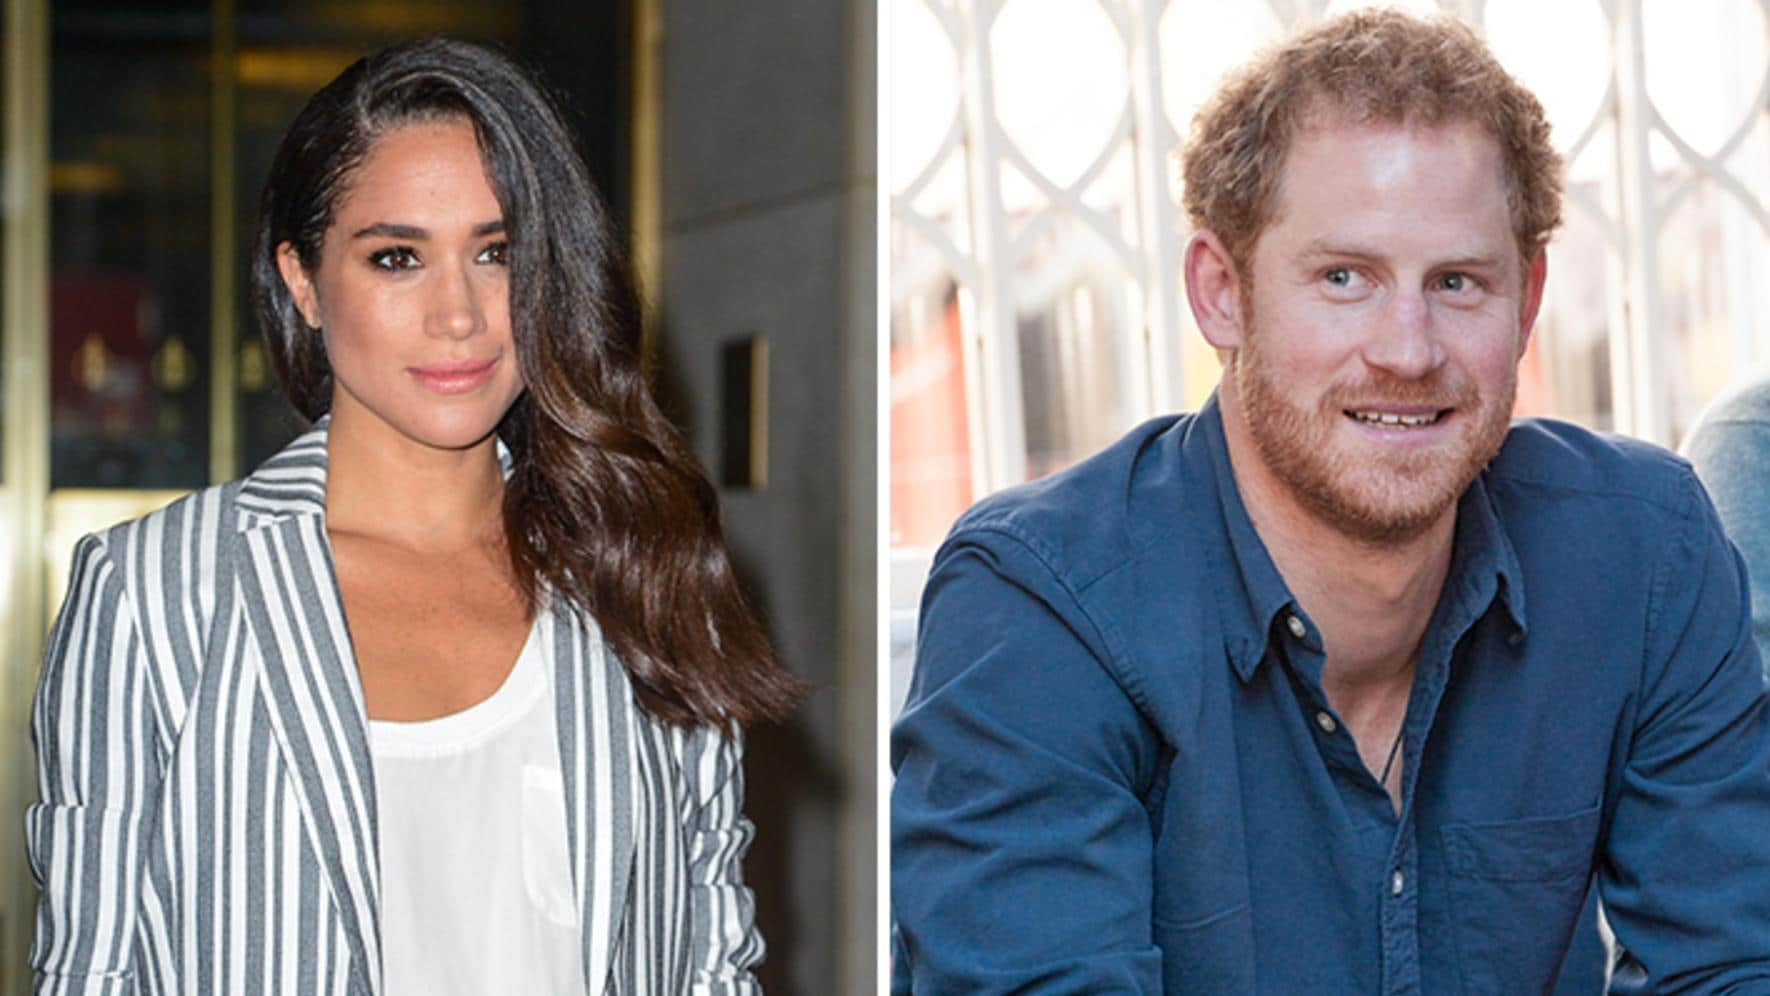 Meghan Markle Freundin Prinz Harry